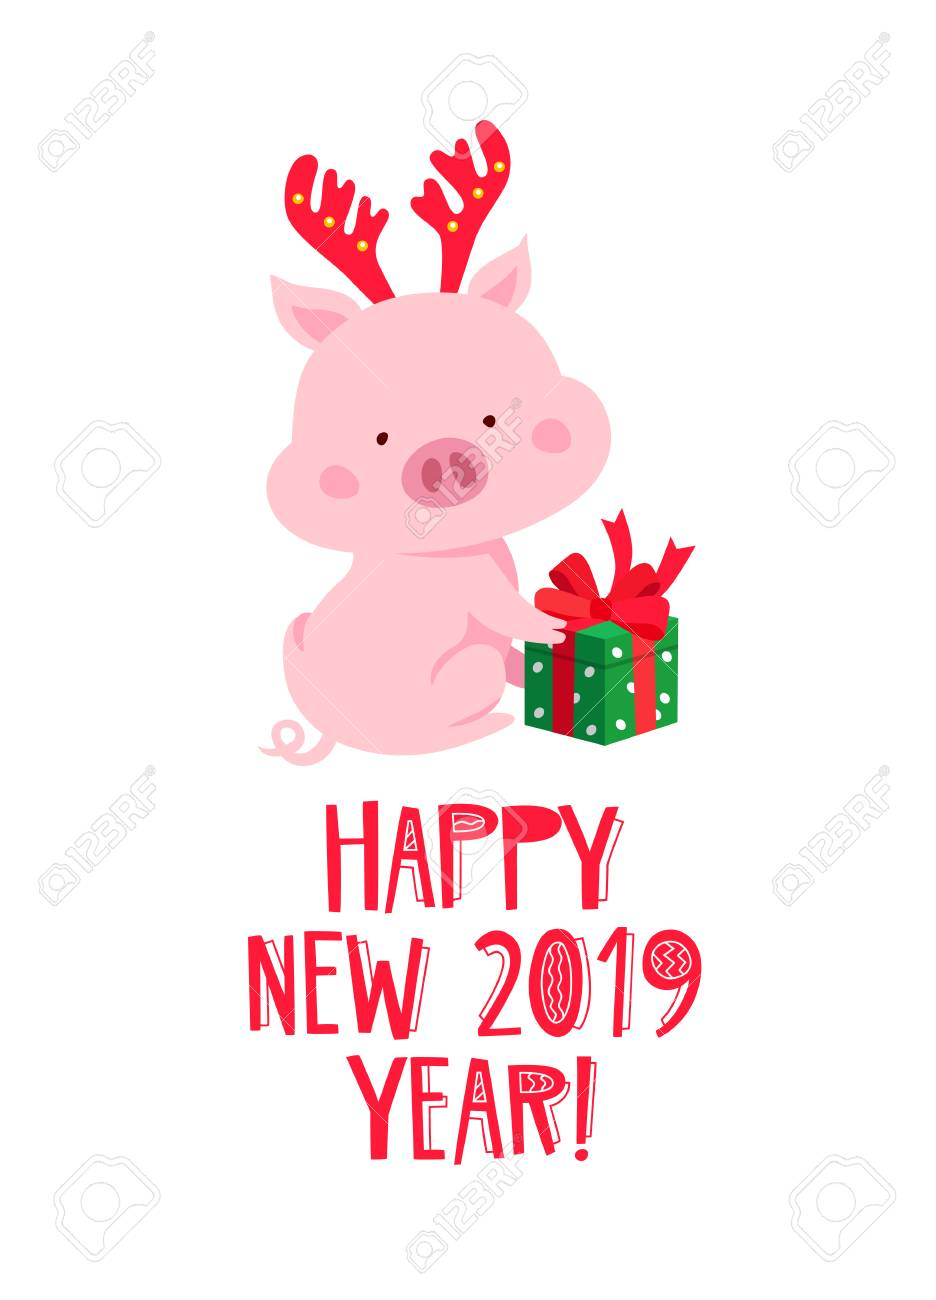 cute pig with antlers and a gift box happy new year chinese symbol of